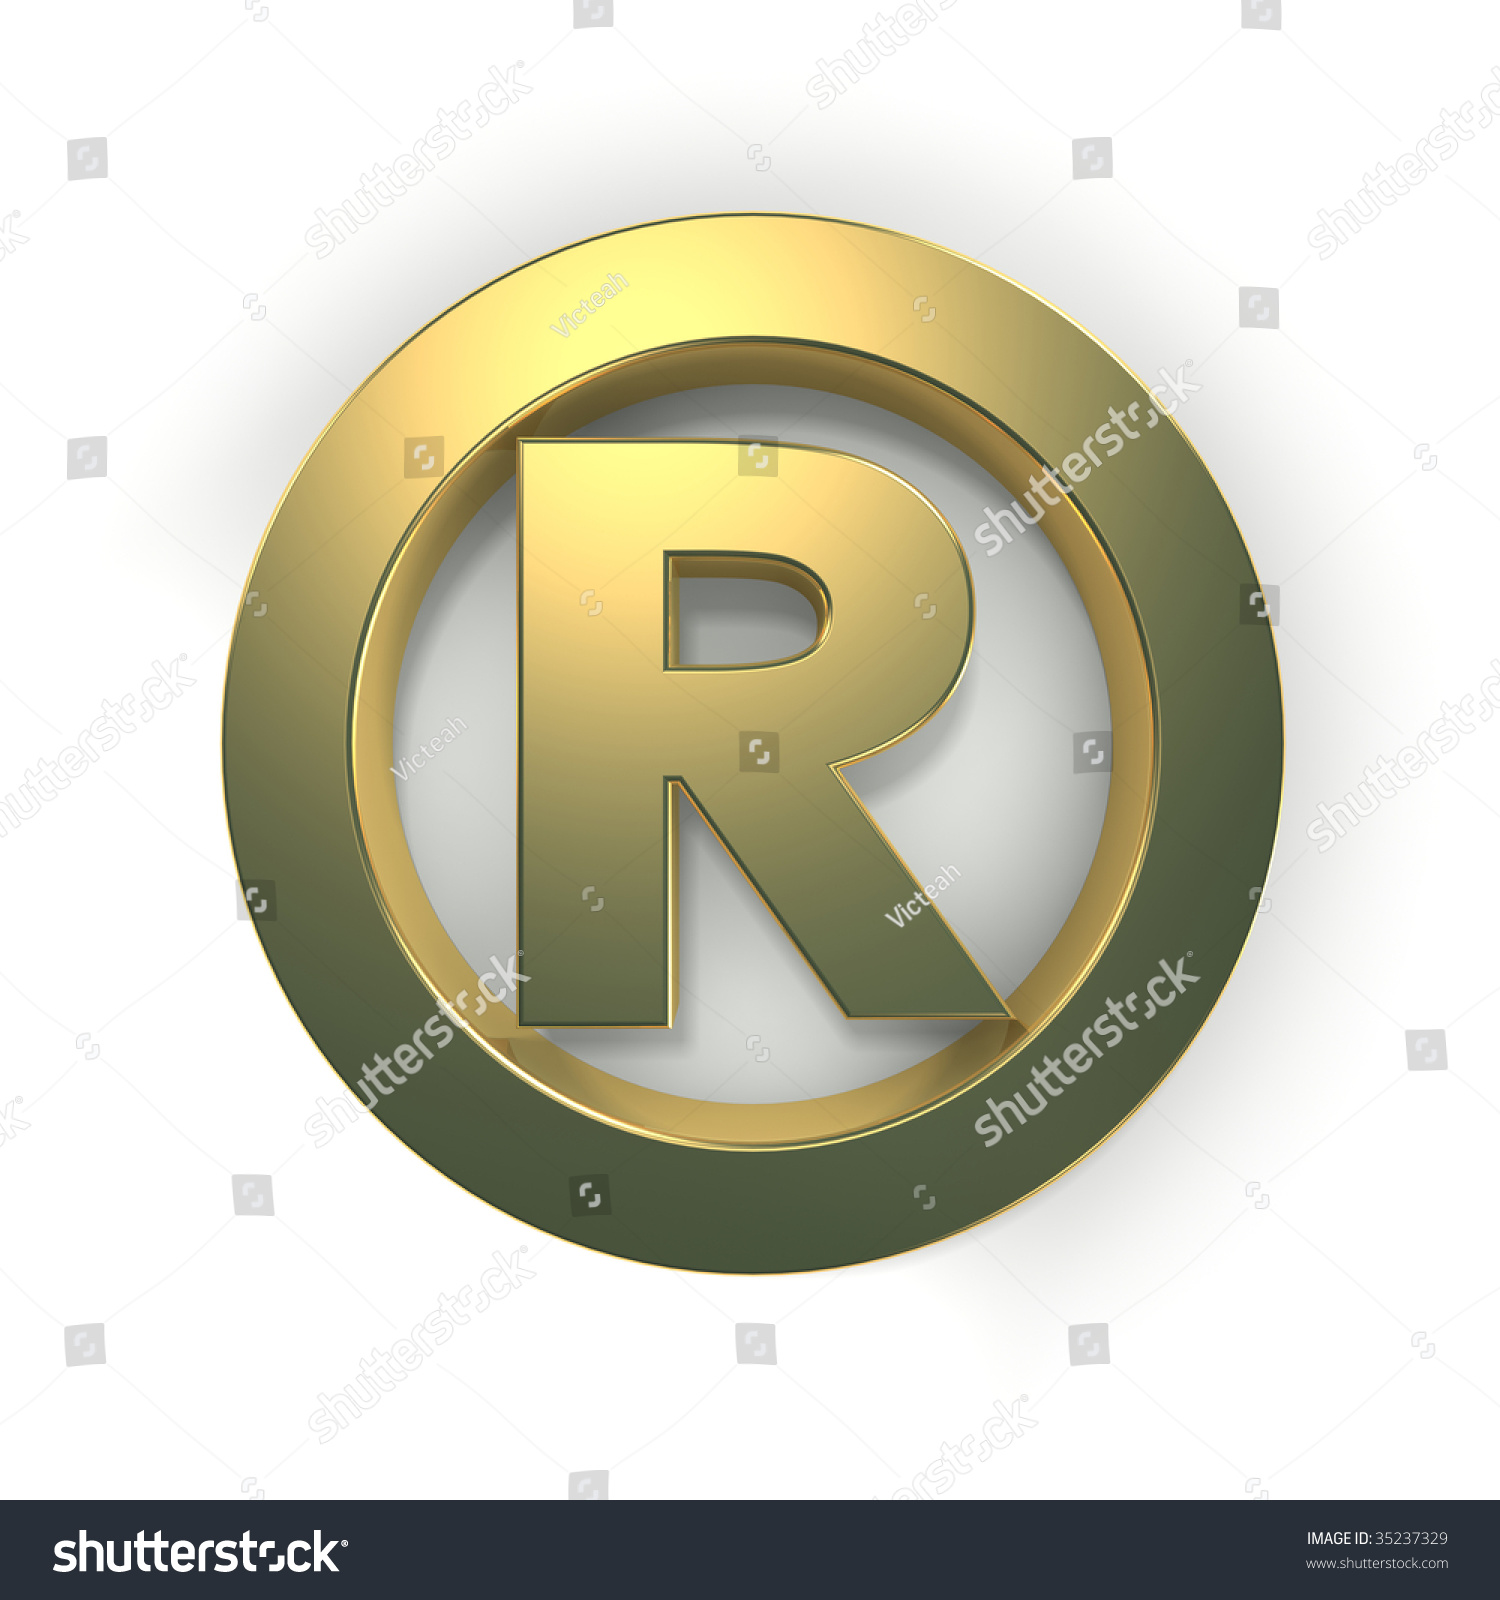 Gold registered symbol on white background stock illustration gold registered symbol on white background stock illustration 35237329 shutterstock buycottarizona